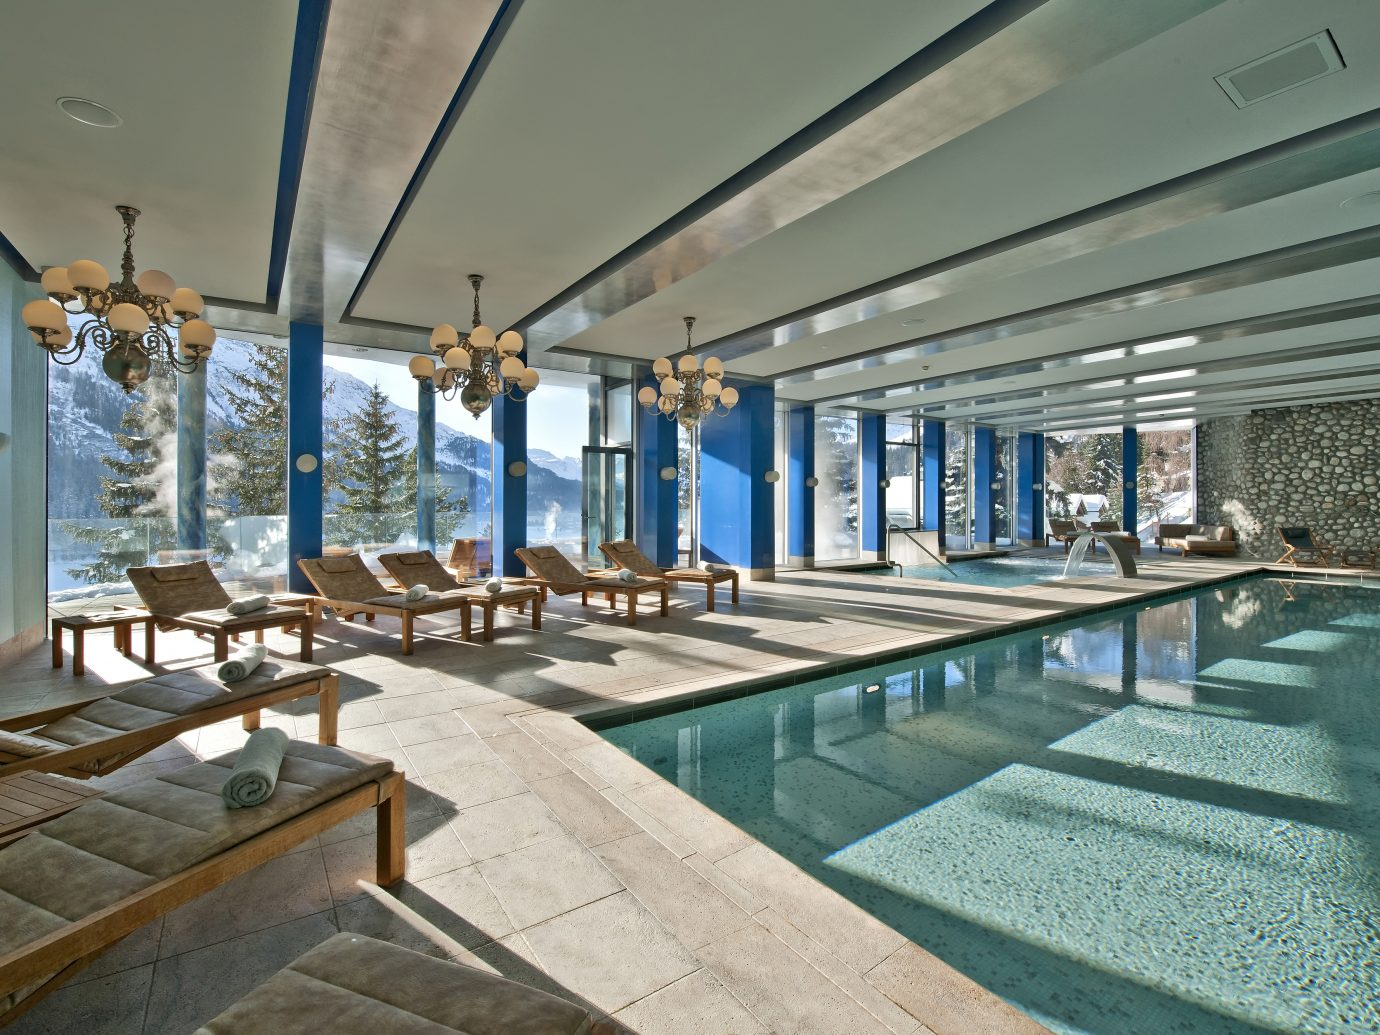 Pool at Carlton Hotel in St. Moritz